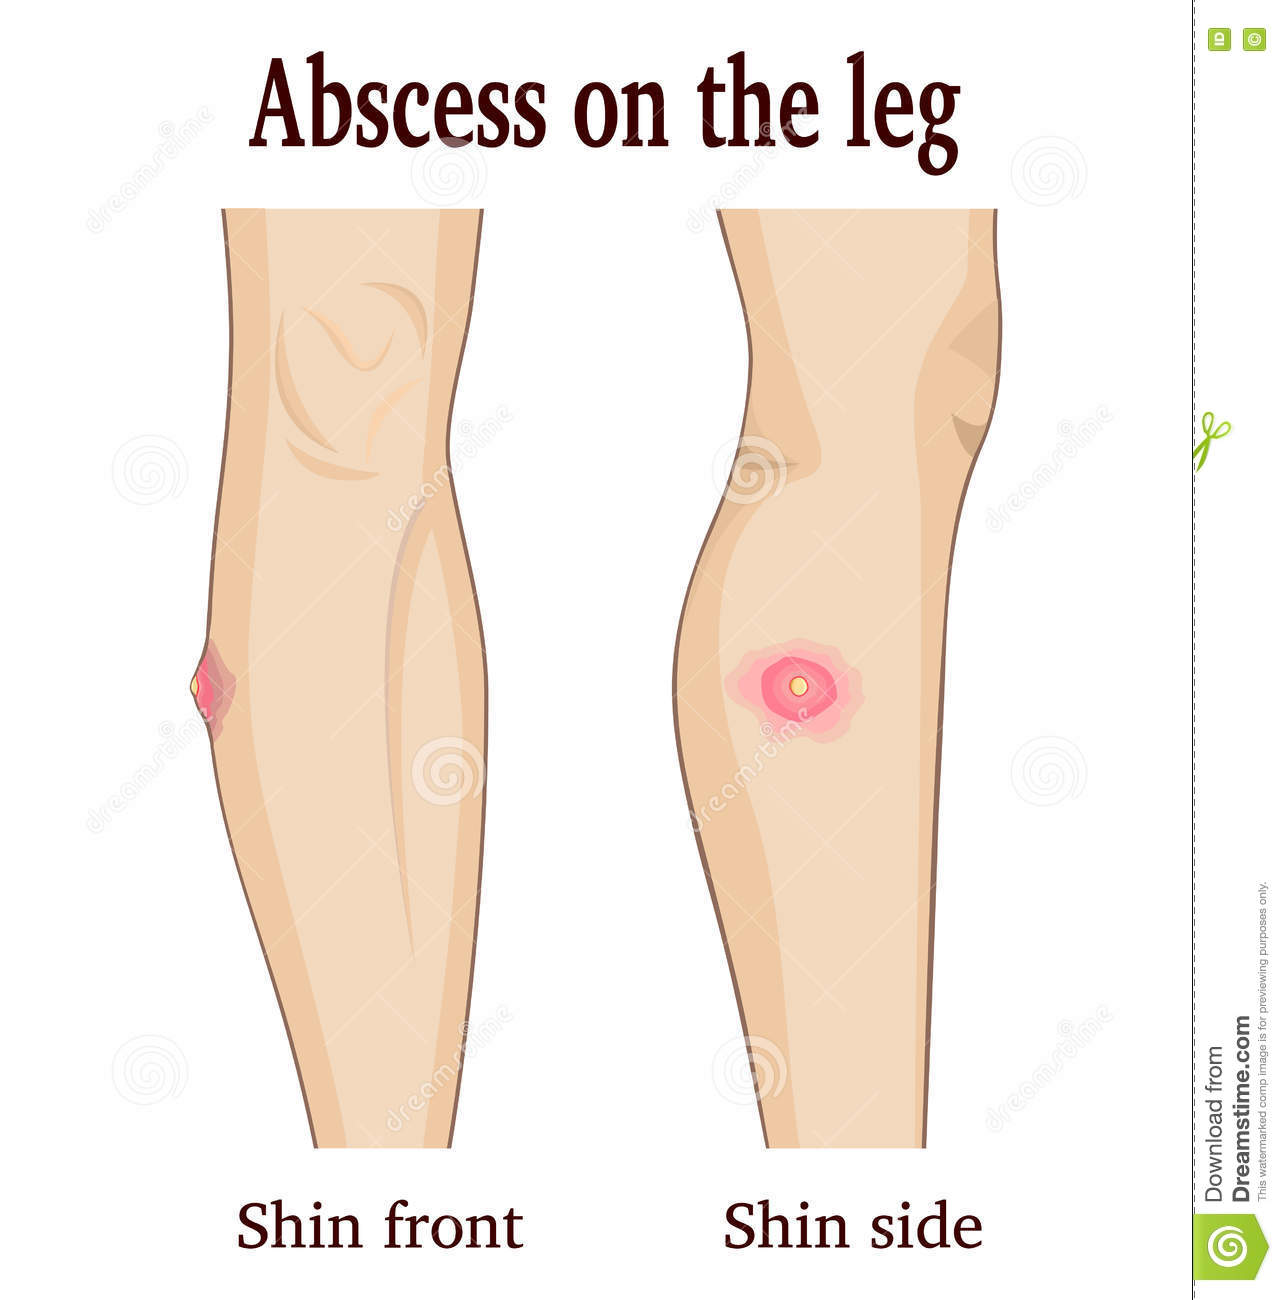 hight resolution of abscess on the leg image abscess on the leg from two perspectives royalty free illustration